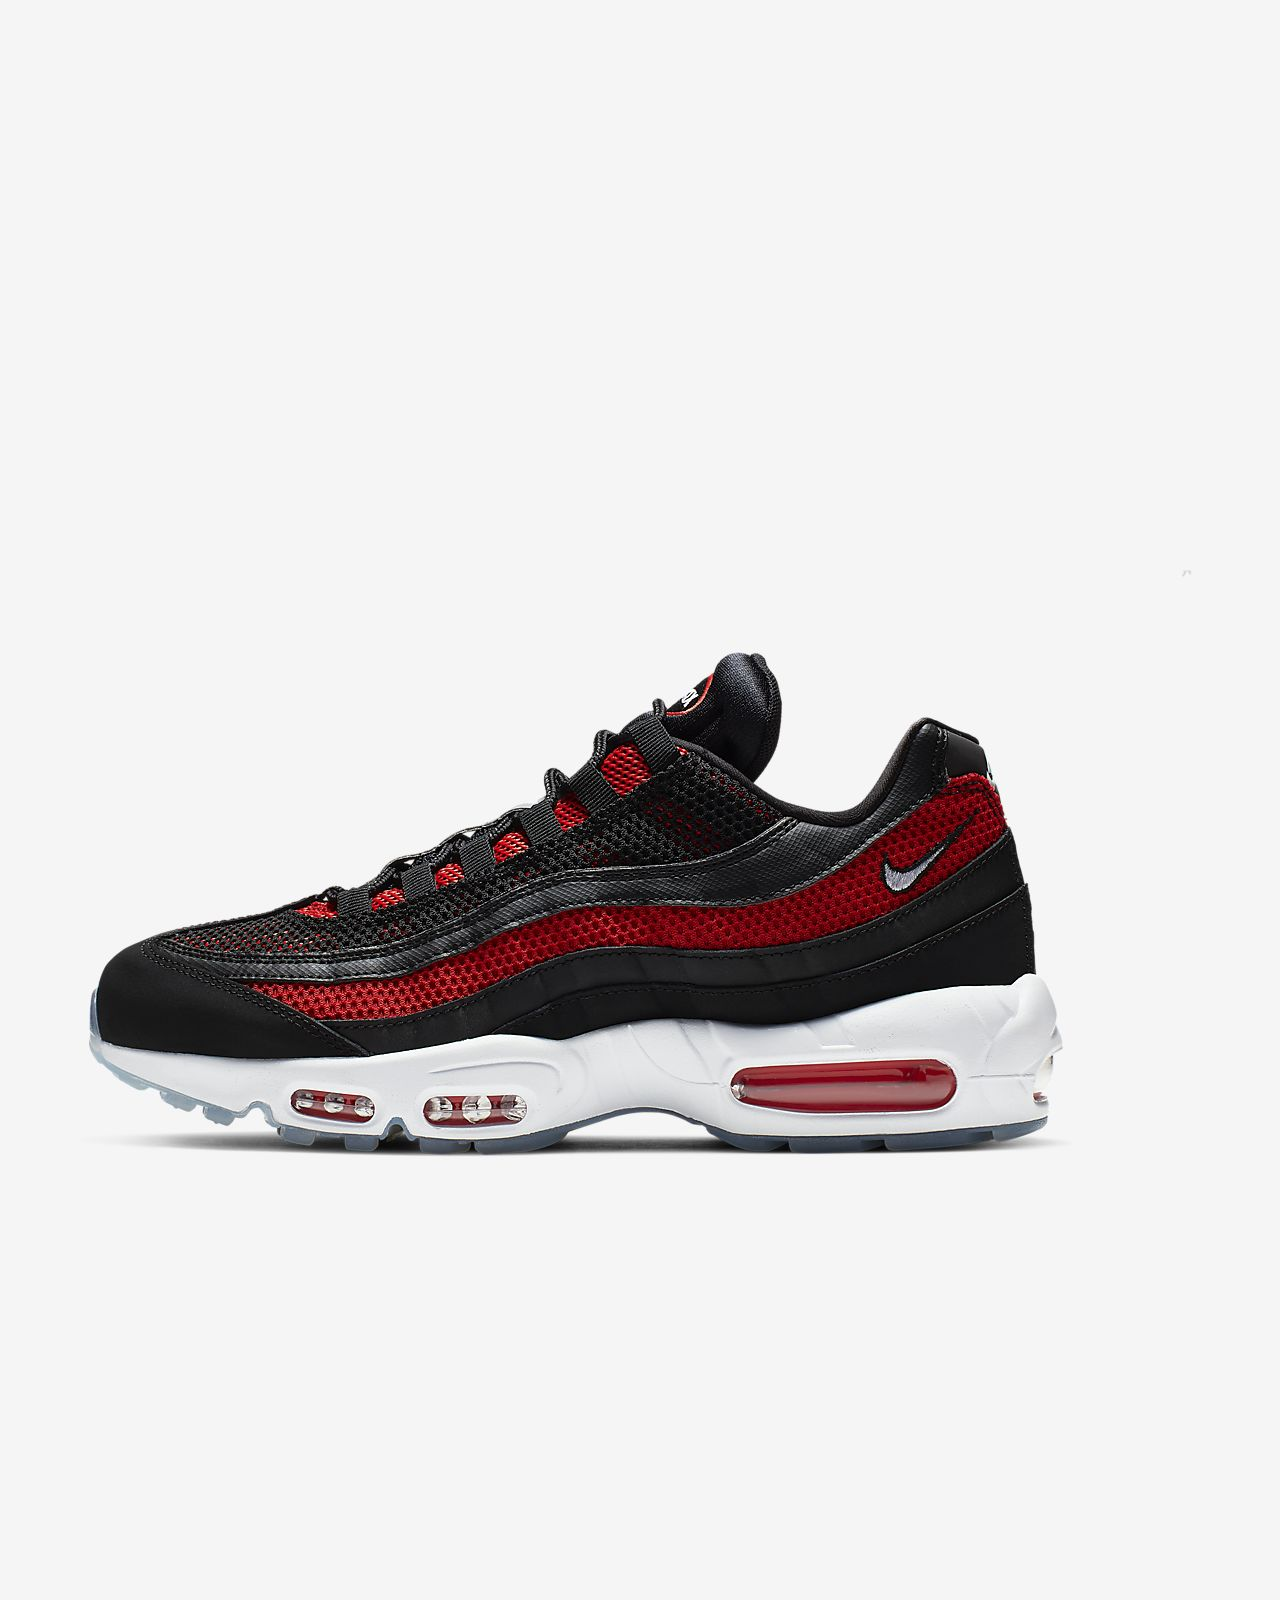 innovative design 77681 f4b05 Men s Shoe. Nike Air Max 95 Essential